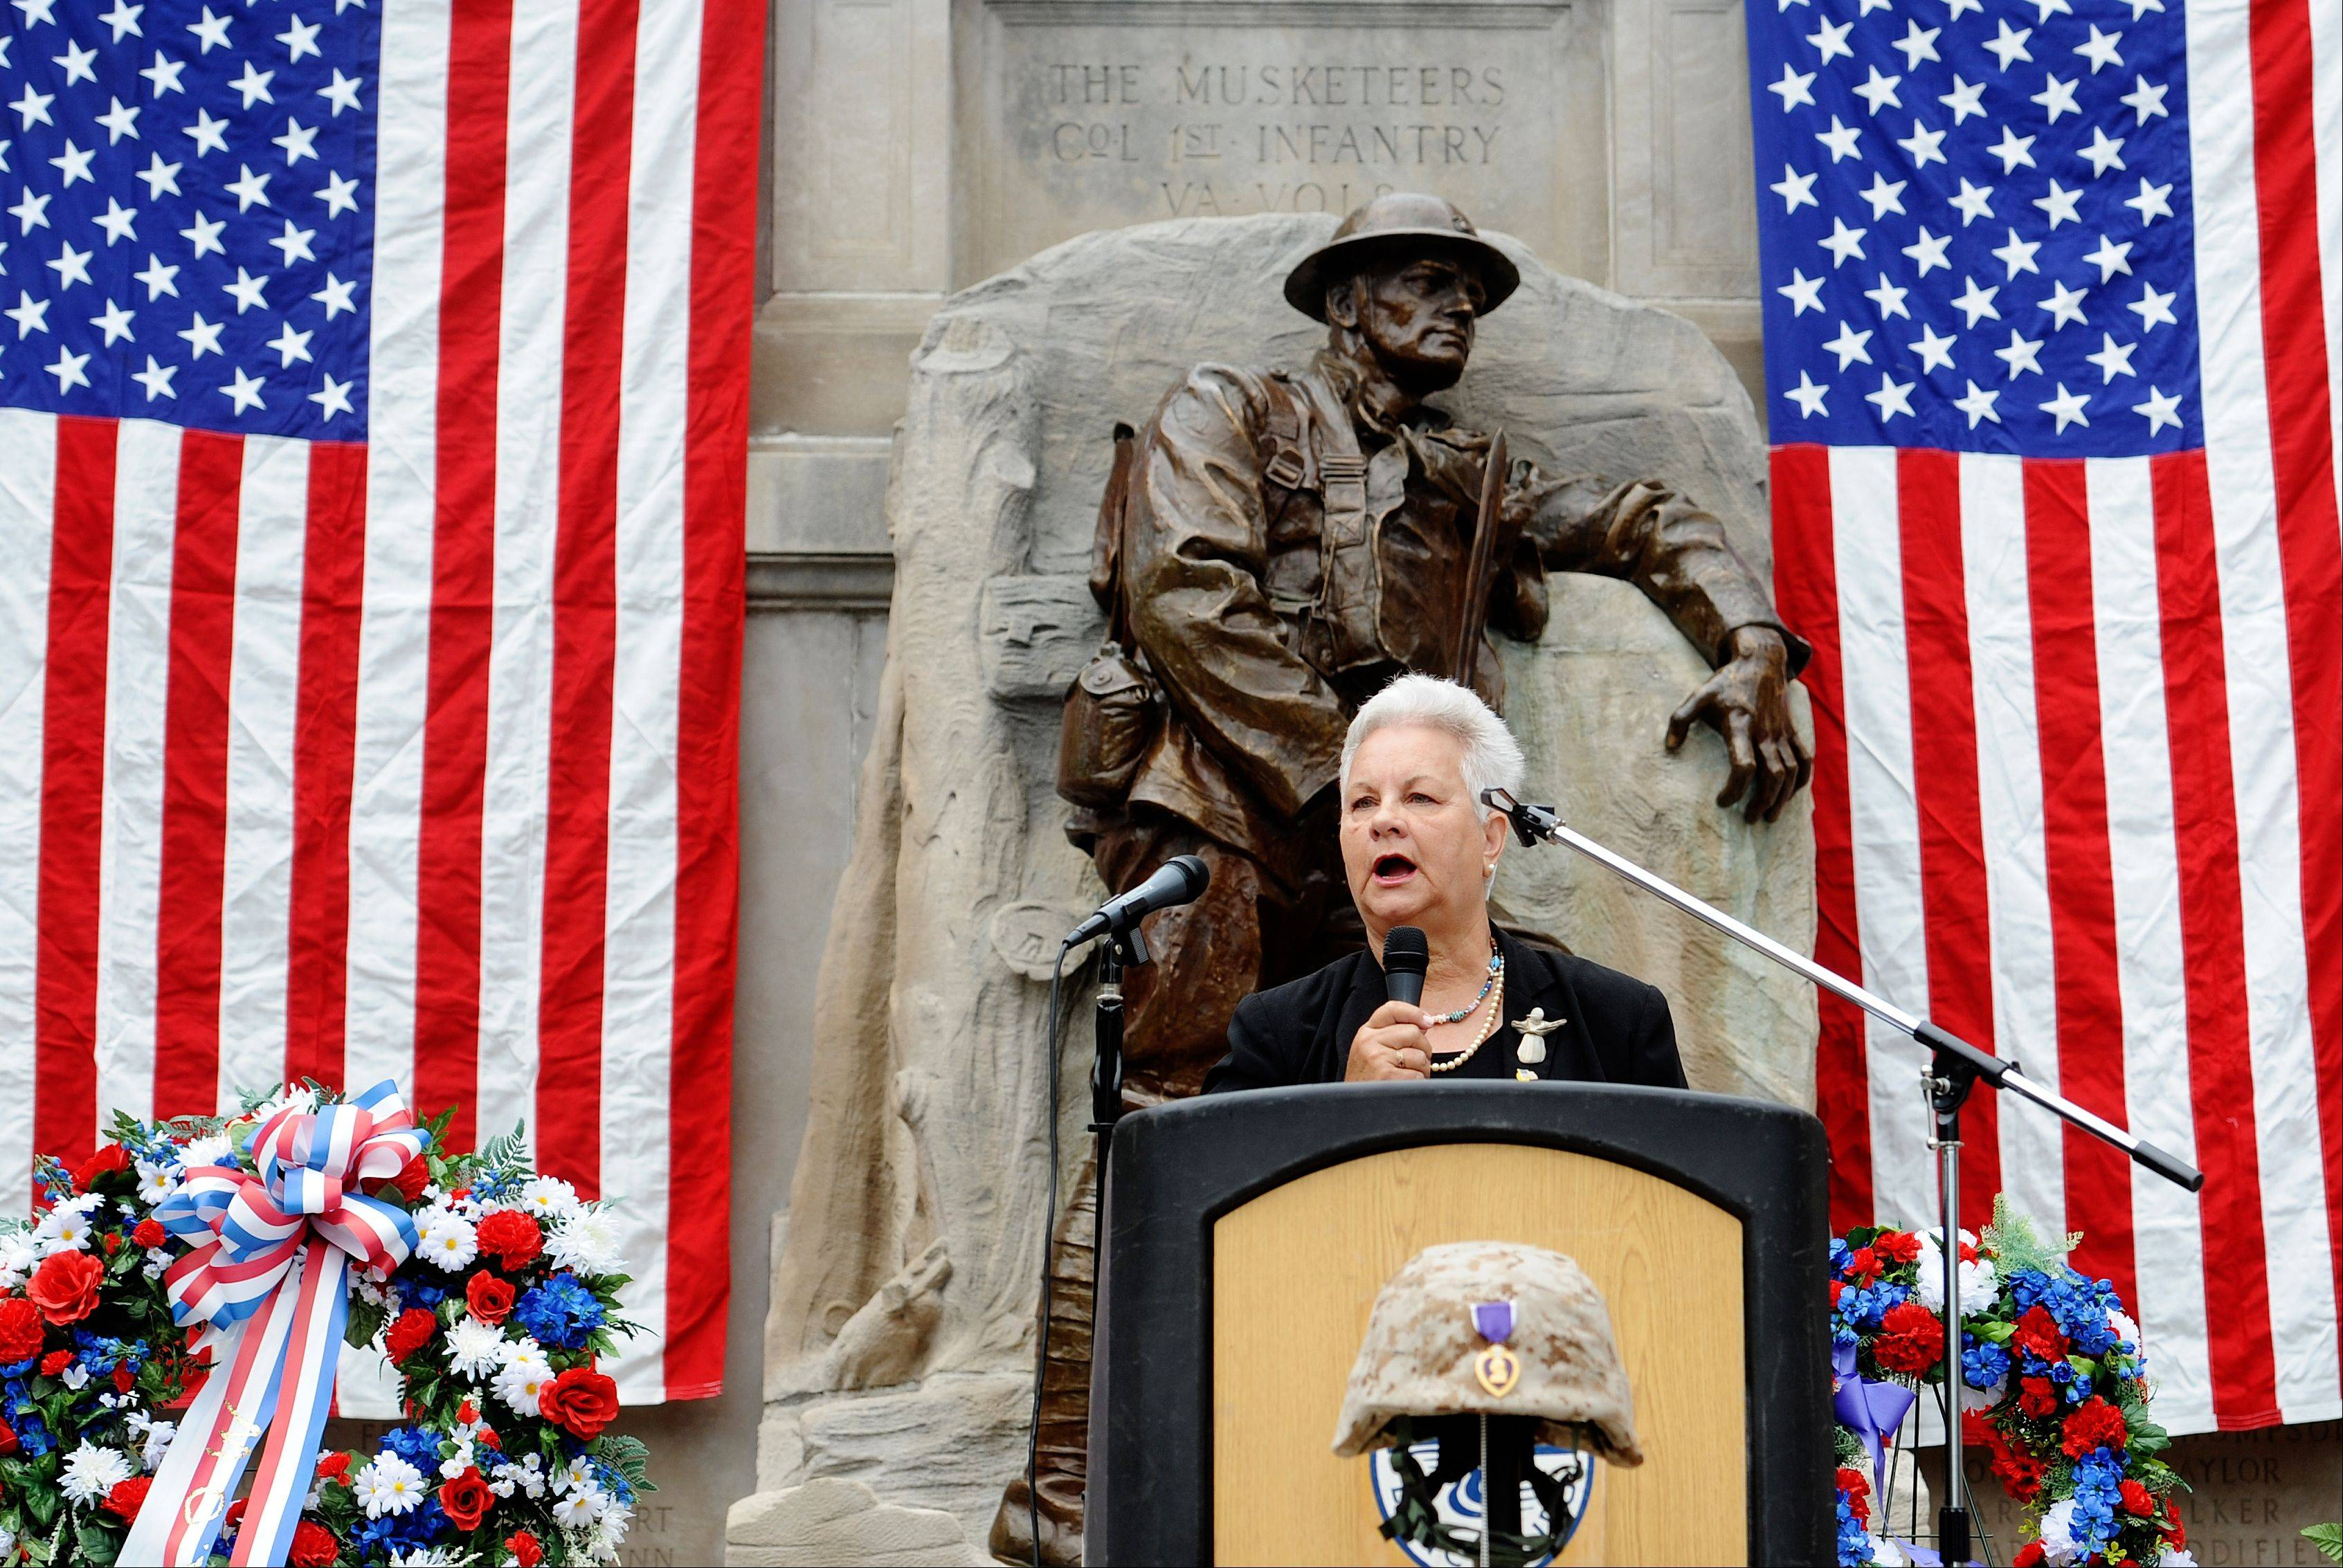 Rev. Sue Knipp takes the stage as Monday's guest speaker at the Memorial Day service in Lynchburg, Va., Monday, May 27, 2013.